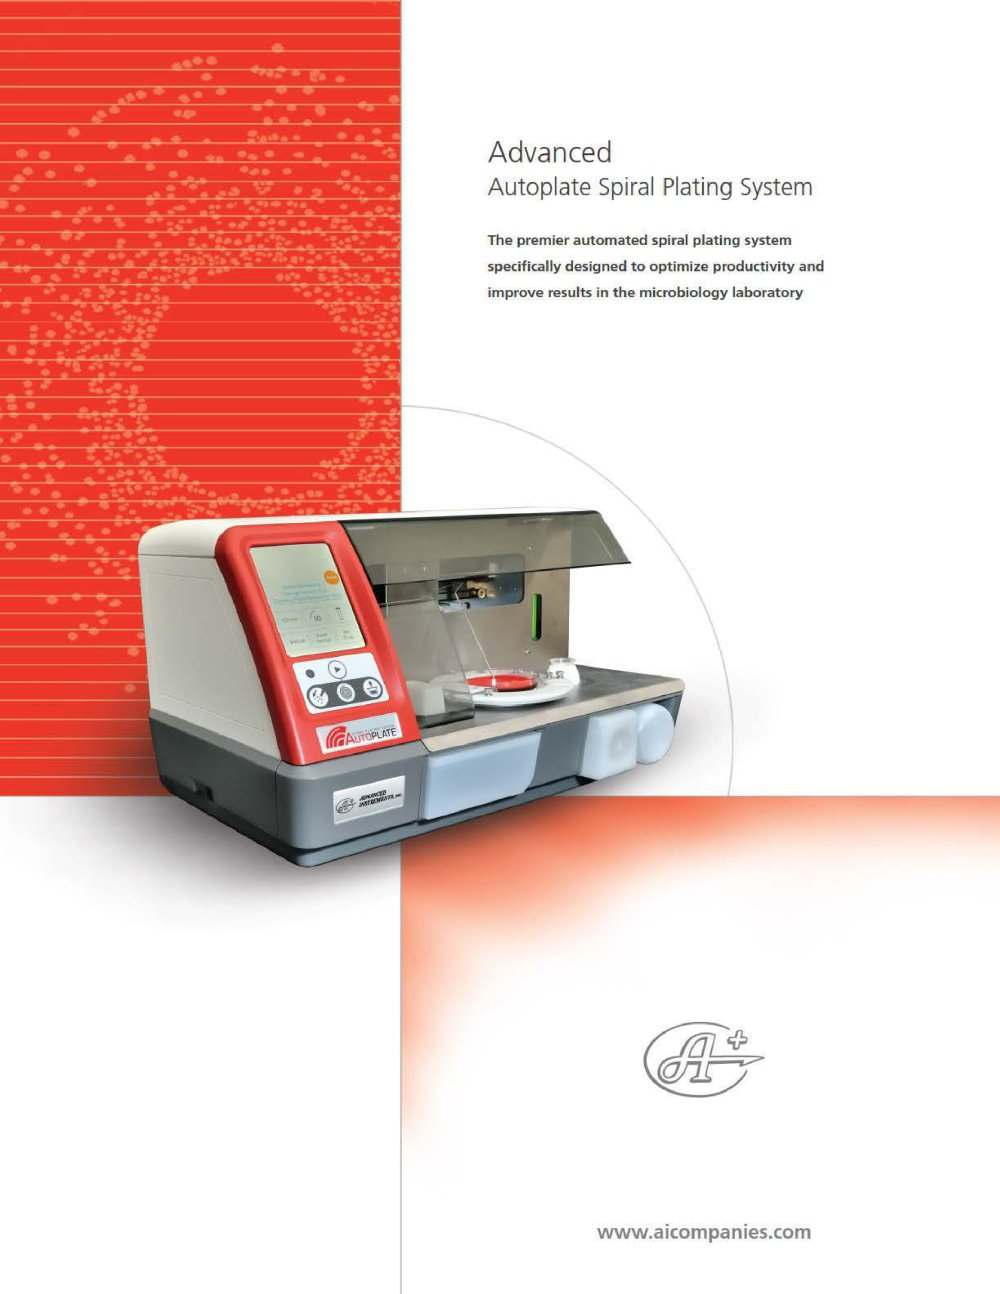 Autoplate® Spiral Plating System - 1 / 4 Pages